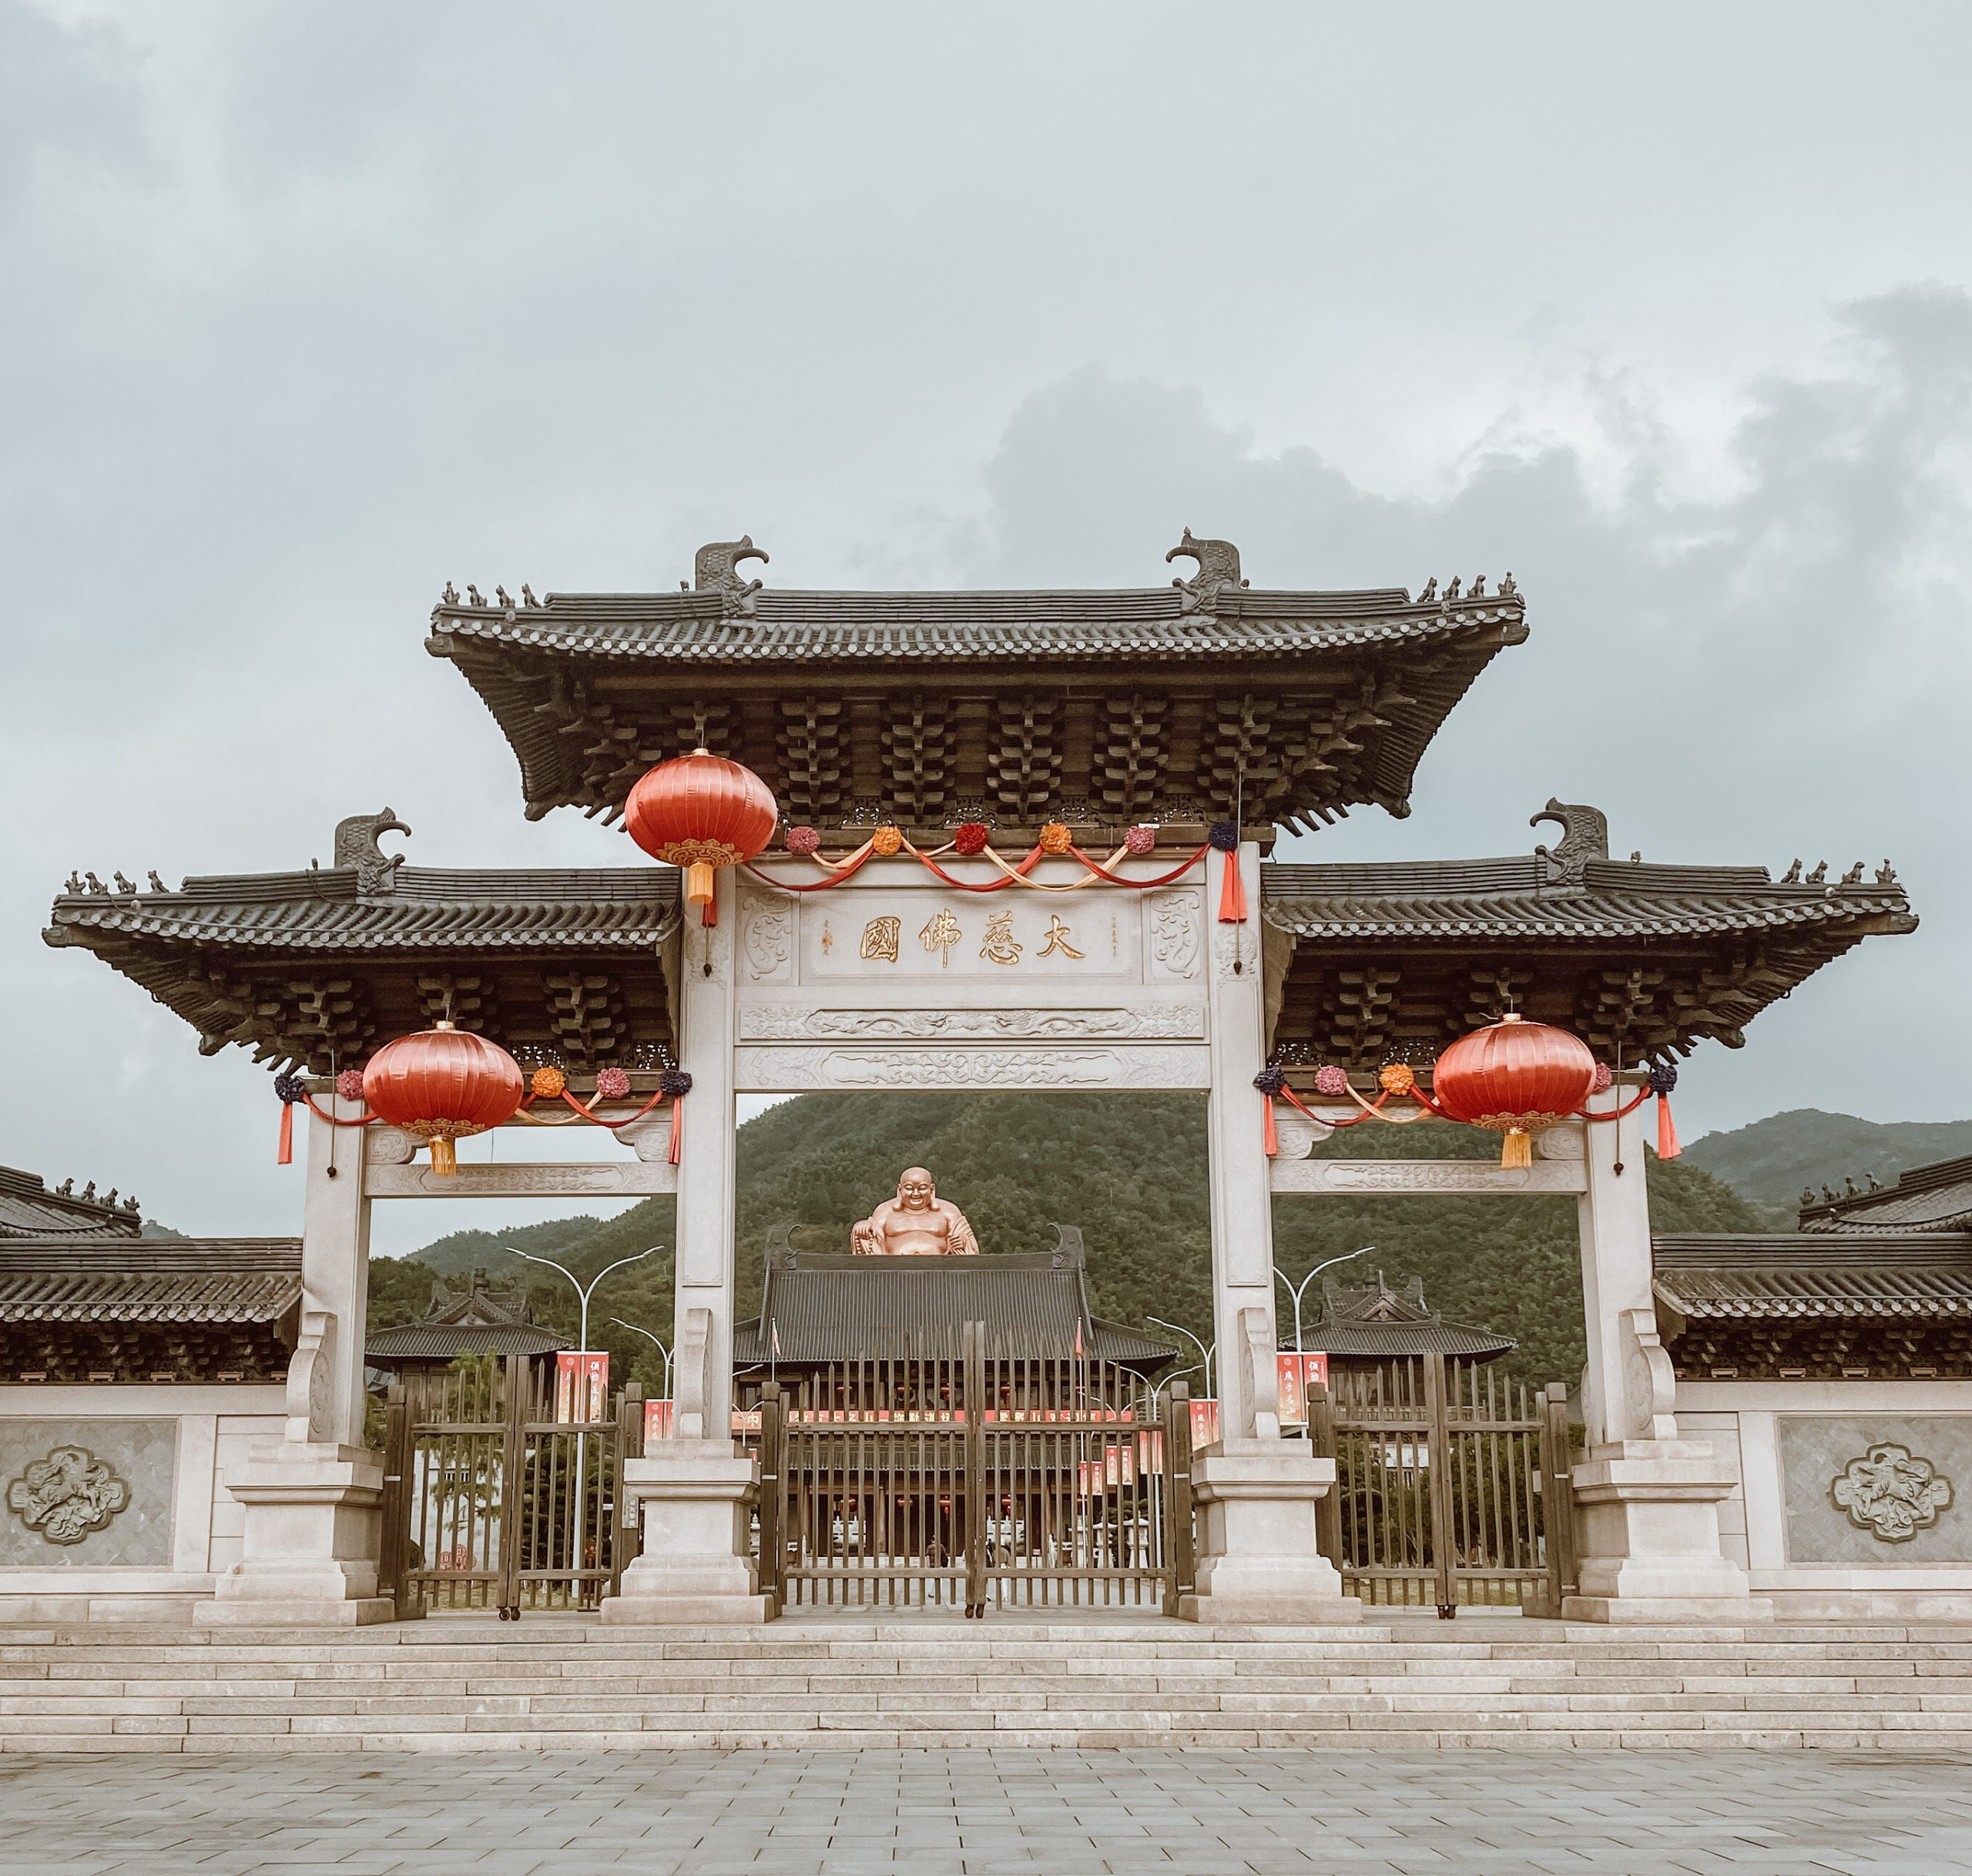 Giant Looking Down from Above – Ningbo's Golden Buddha